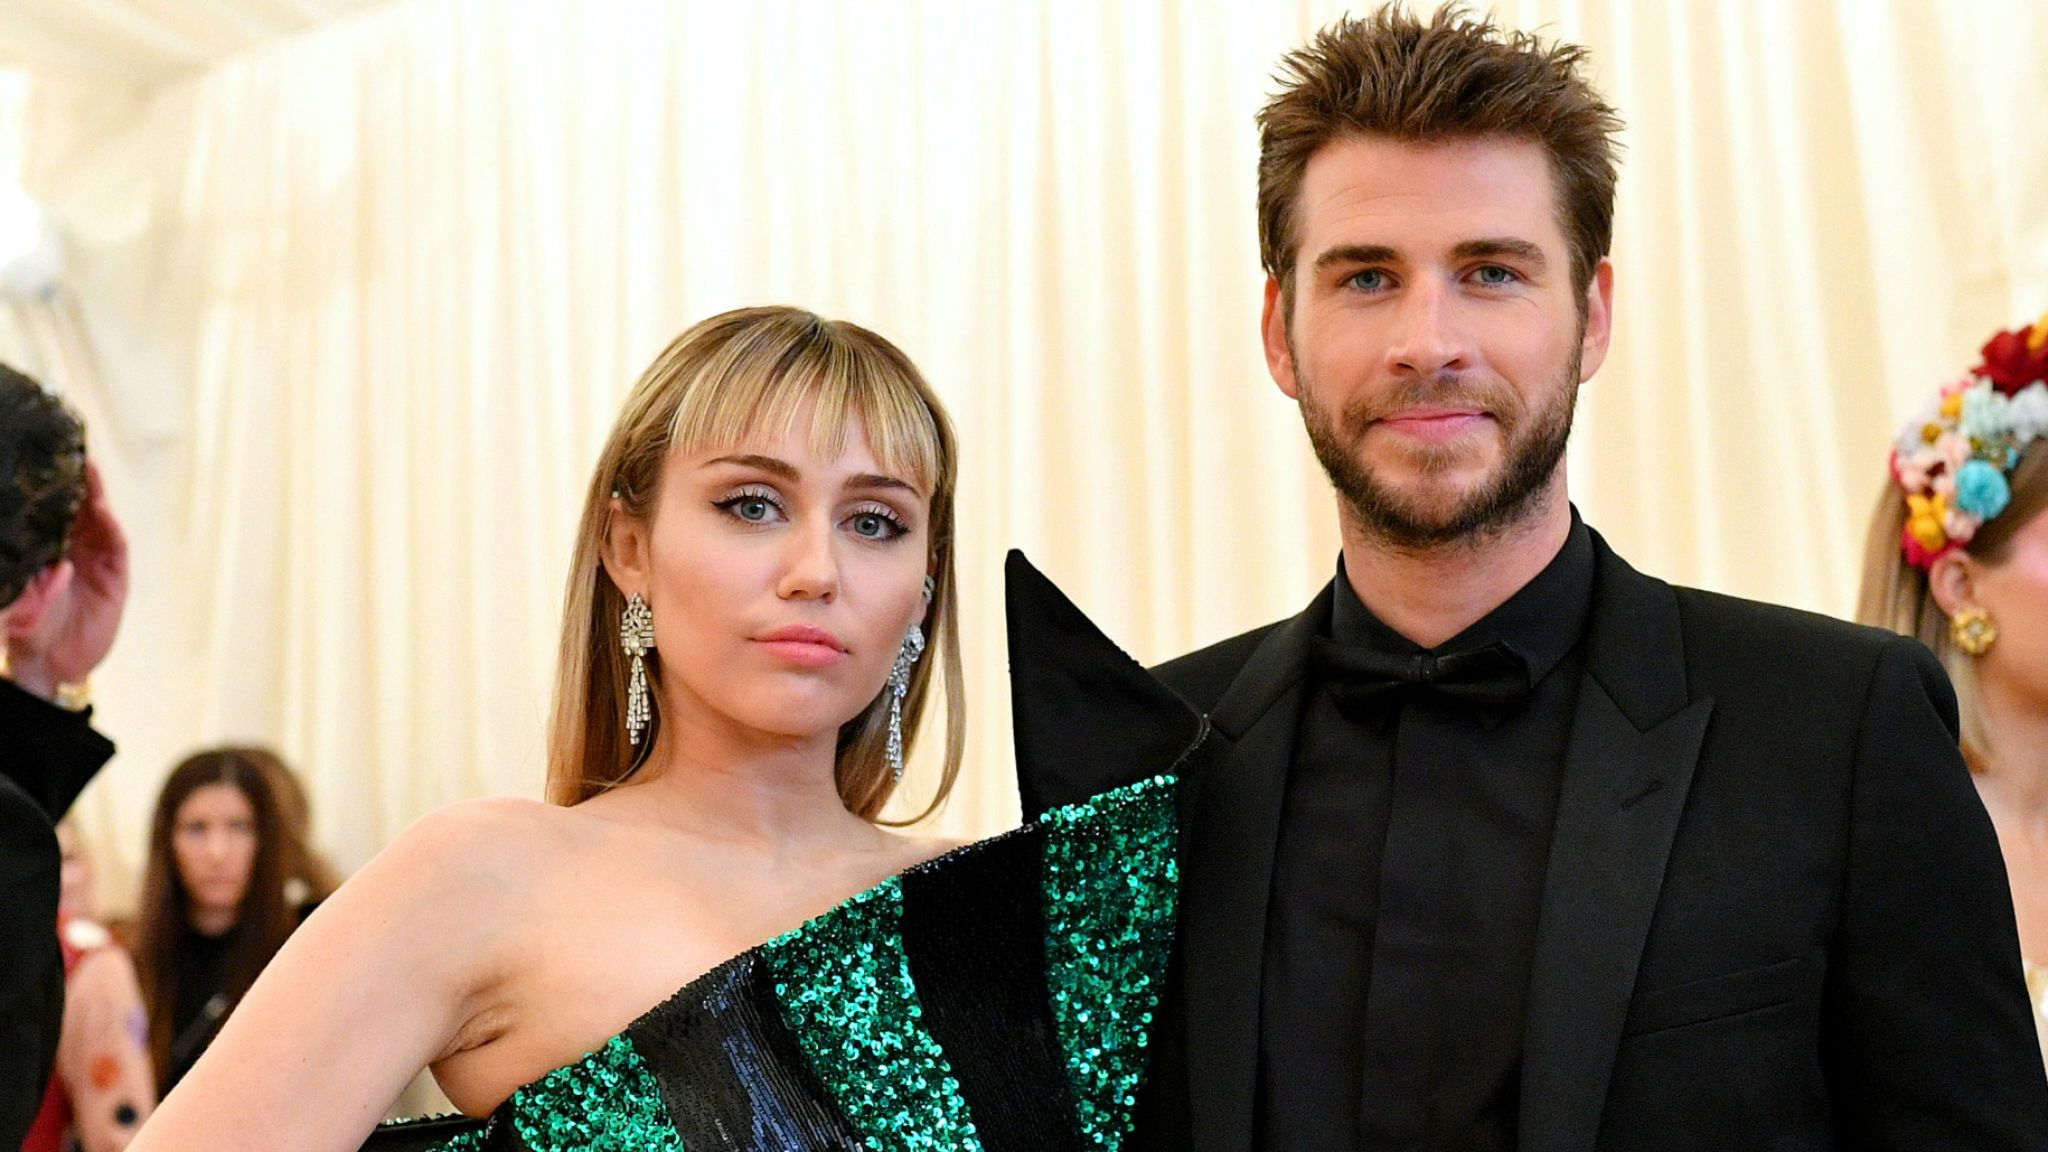 Miley Cyrus Releases 'Slide Away' Breakup Single